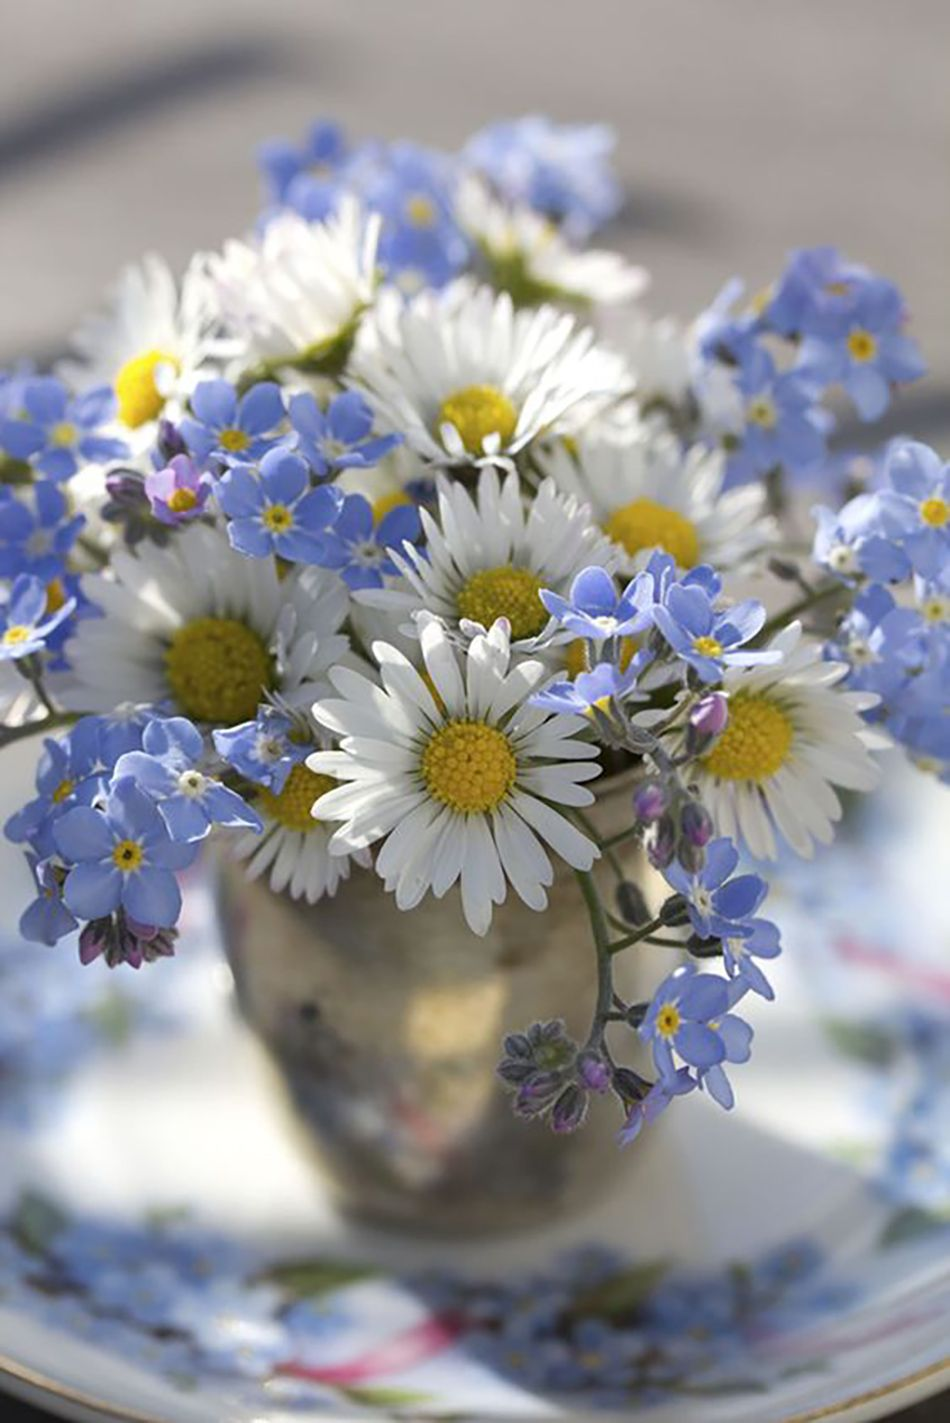 Blue flowers and daisies in a jar pinterest blue blue flowers and daisies in a jar izmirmasajfo Image collections